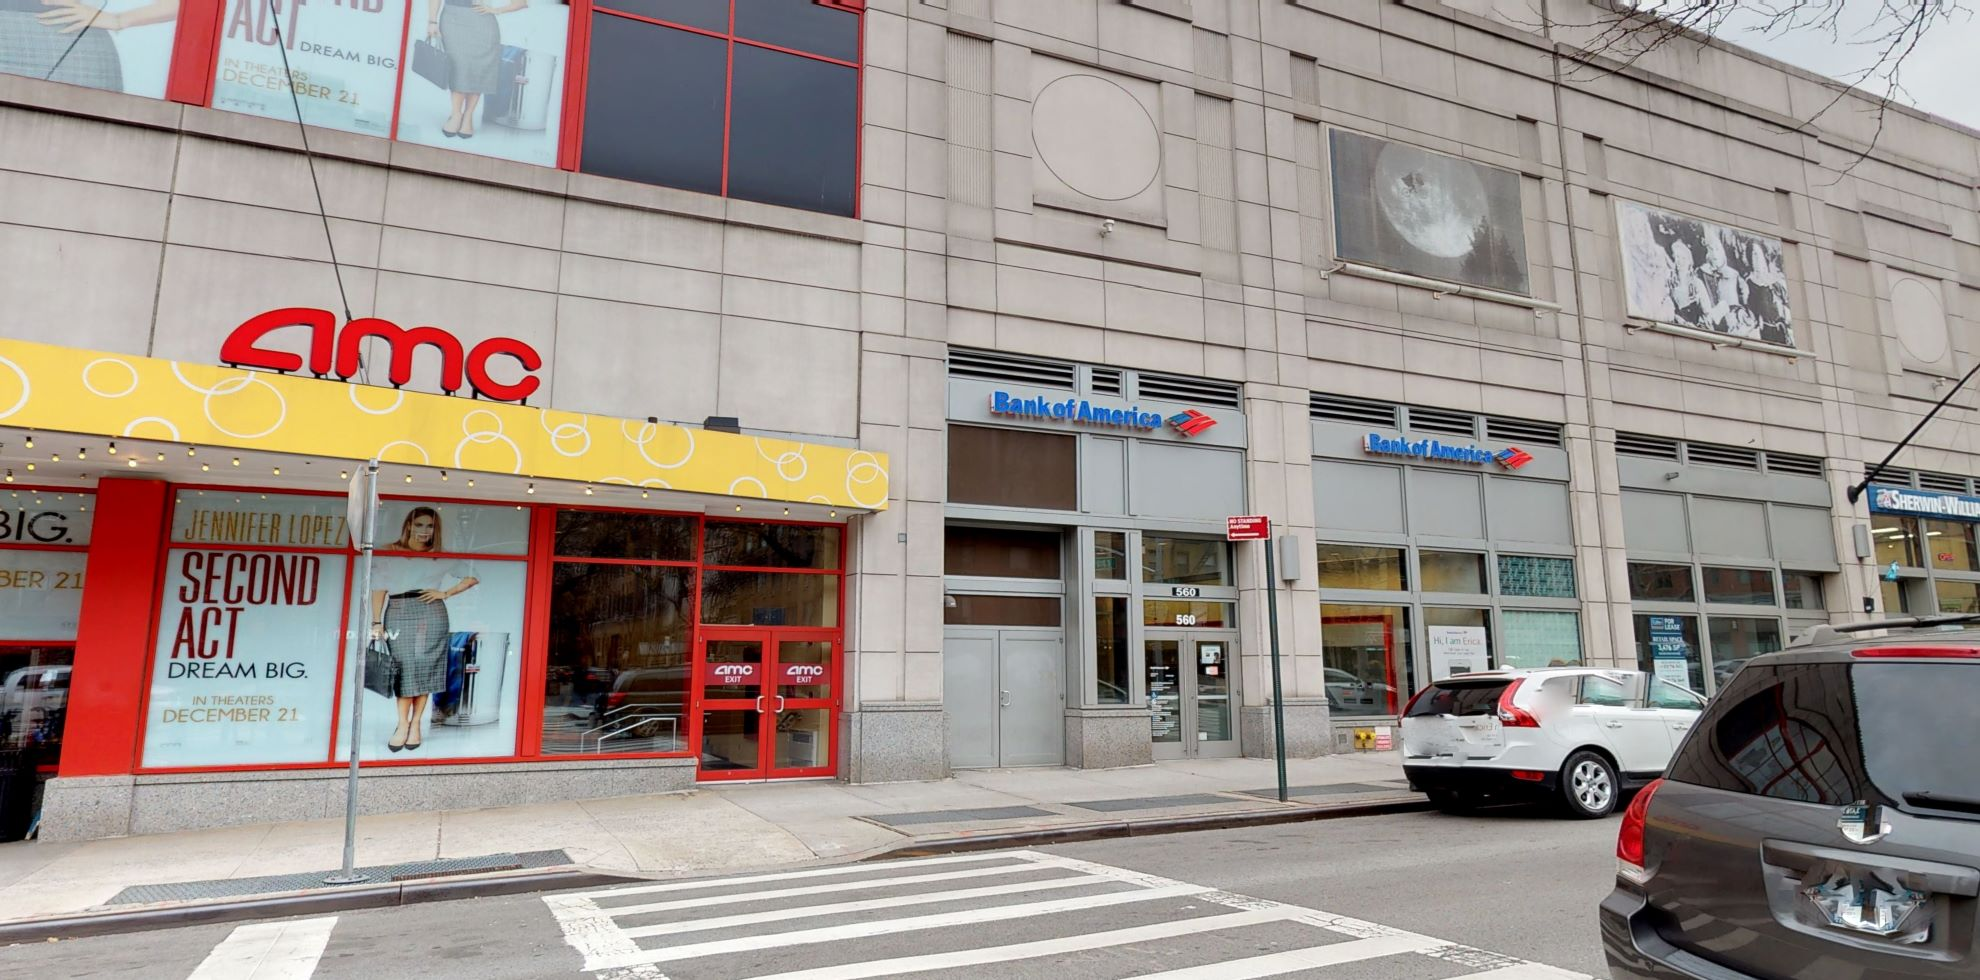 Bank of America financial center with walk-up ATM | 560 2nd Ave, New York, NY 10016